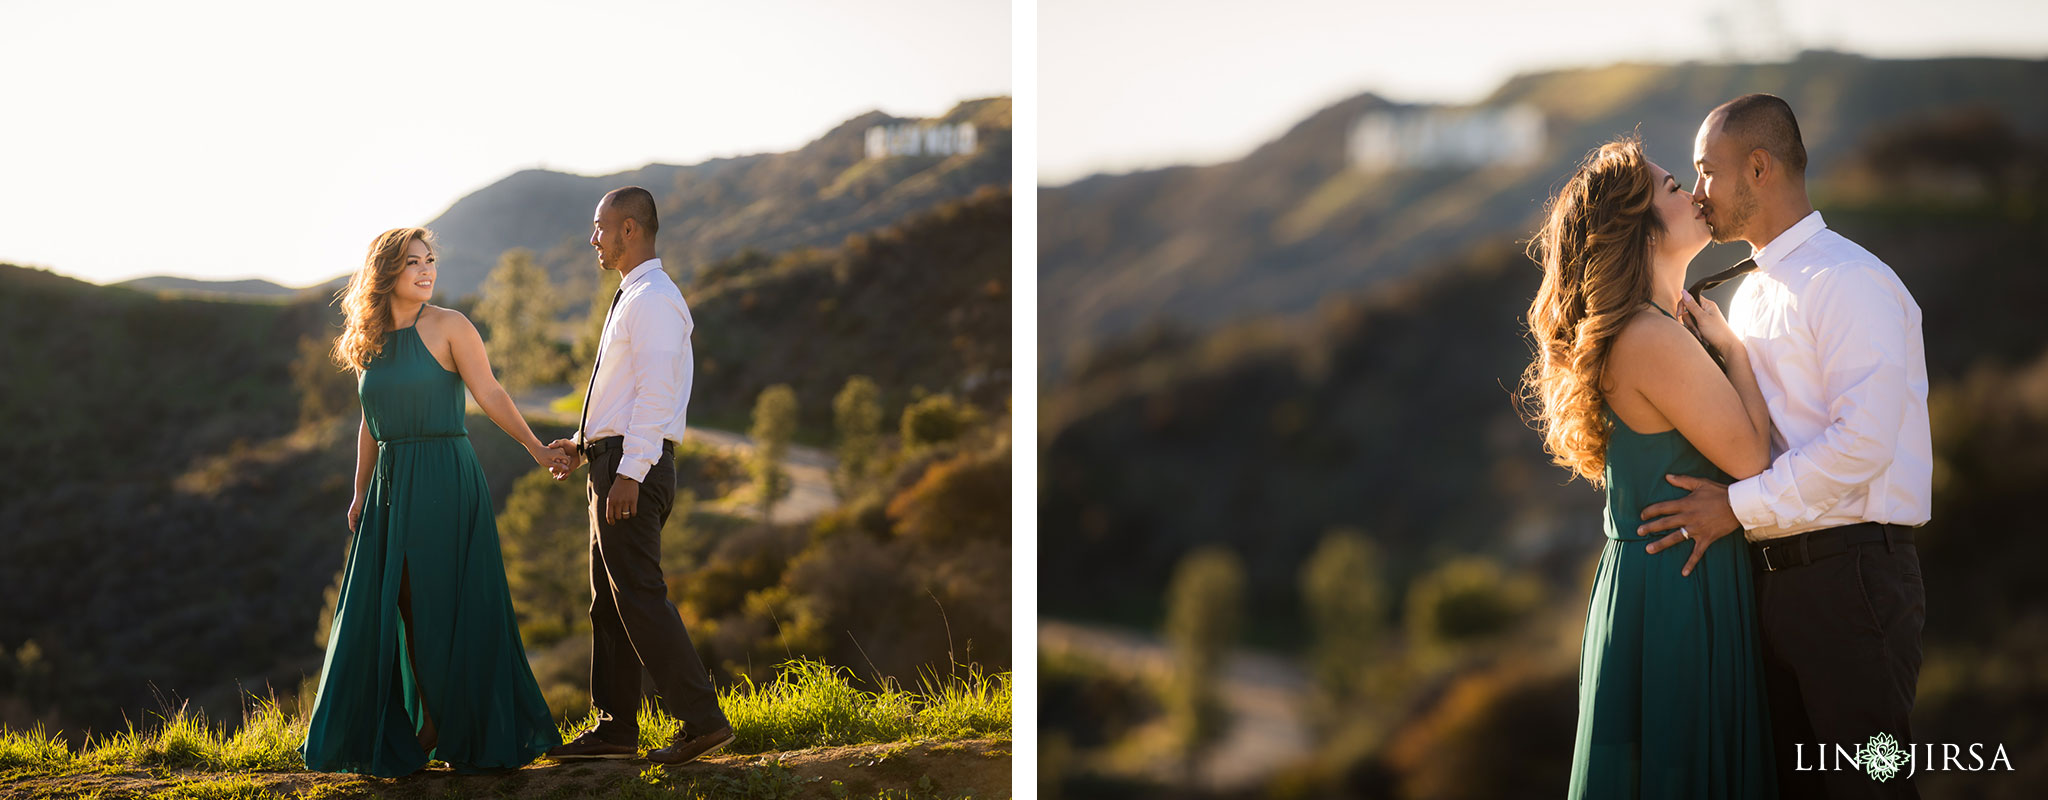 06 griffith park los angeles engagement photography